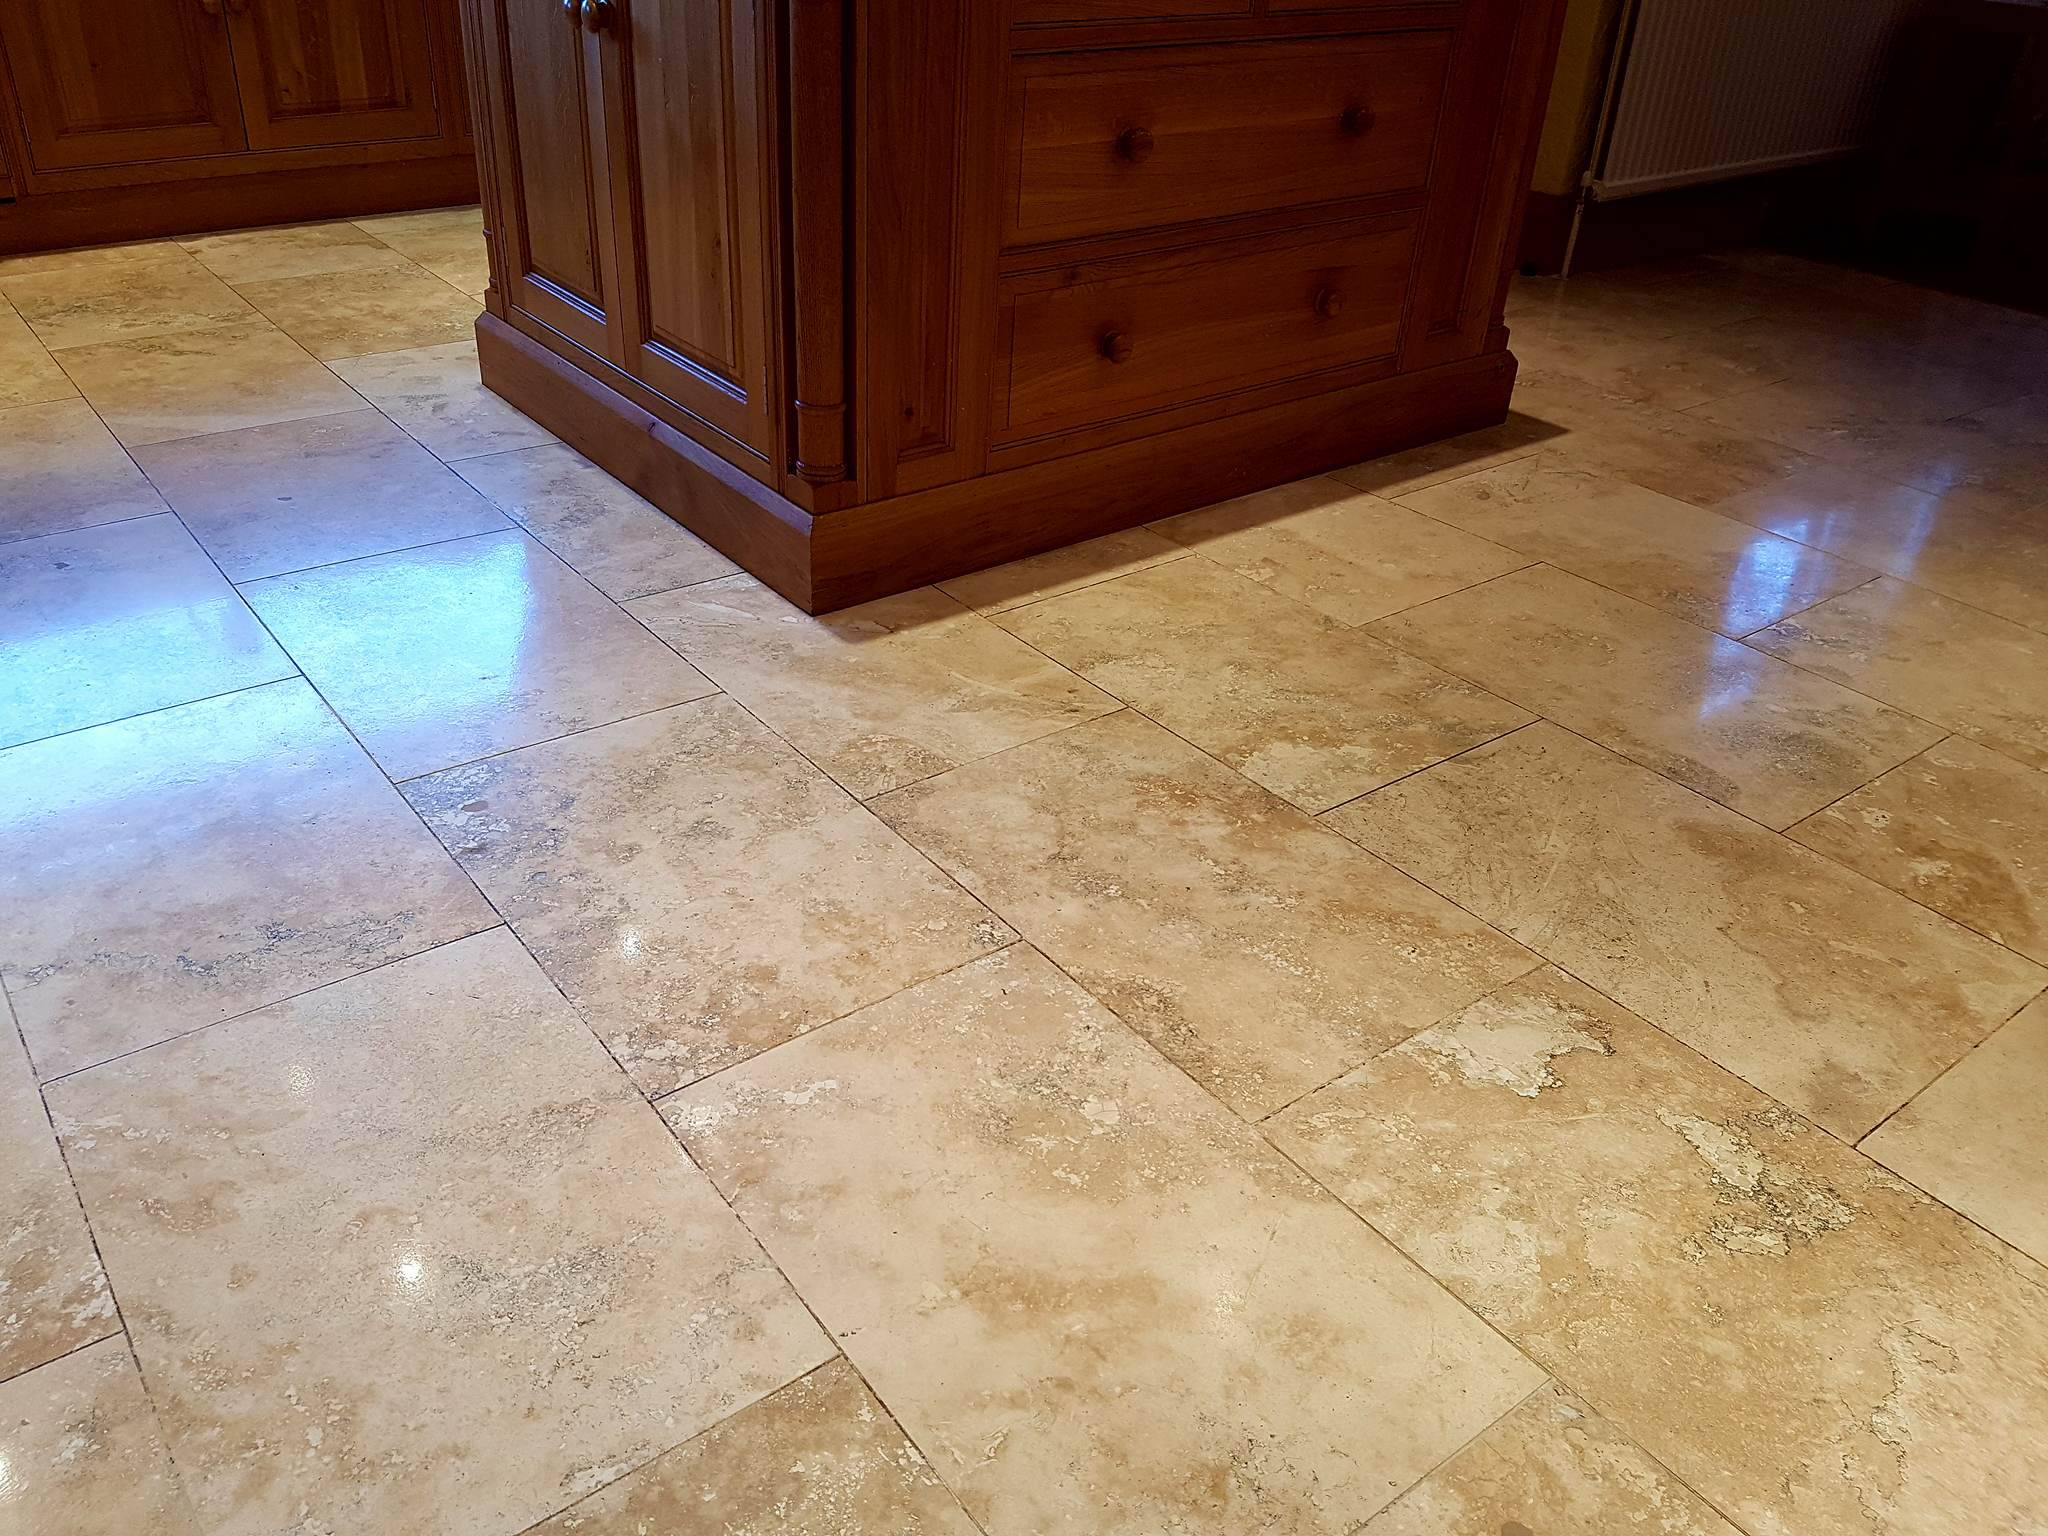 Travertine Tiled Floor After Cleaning Bury